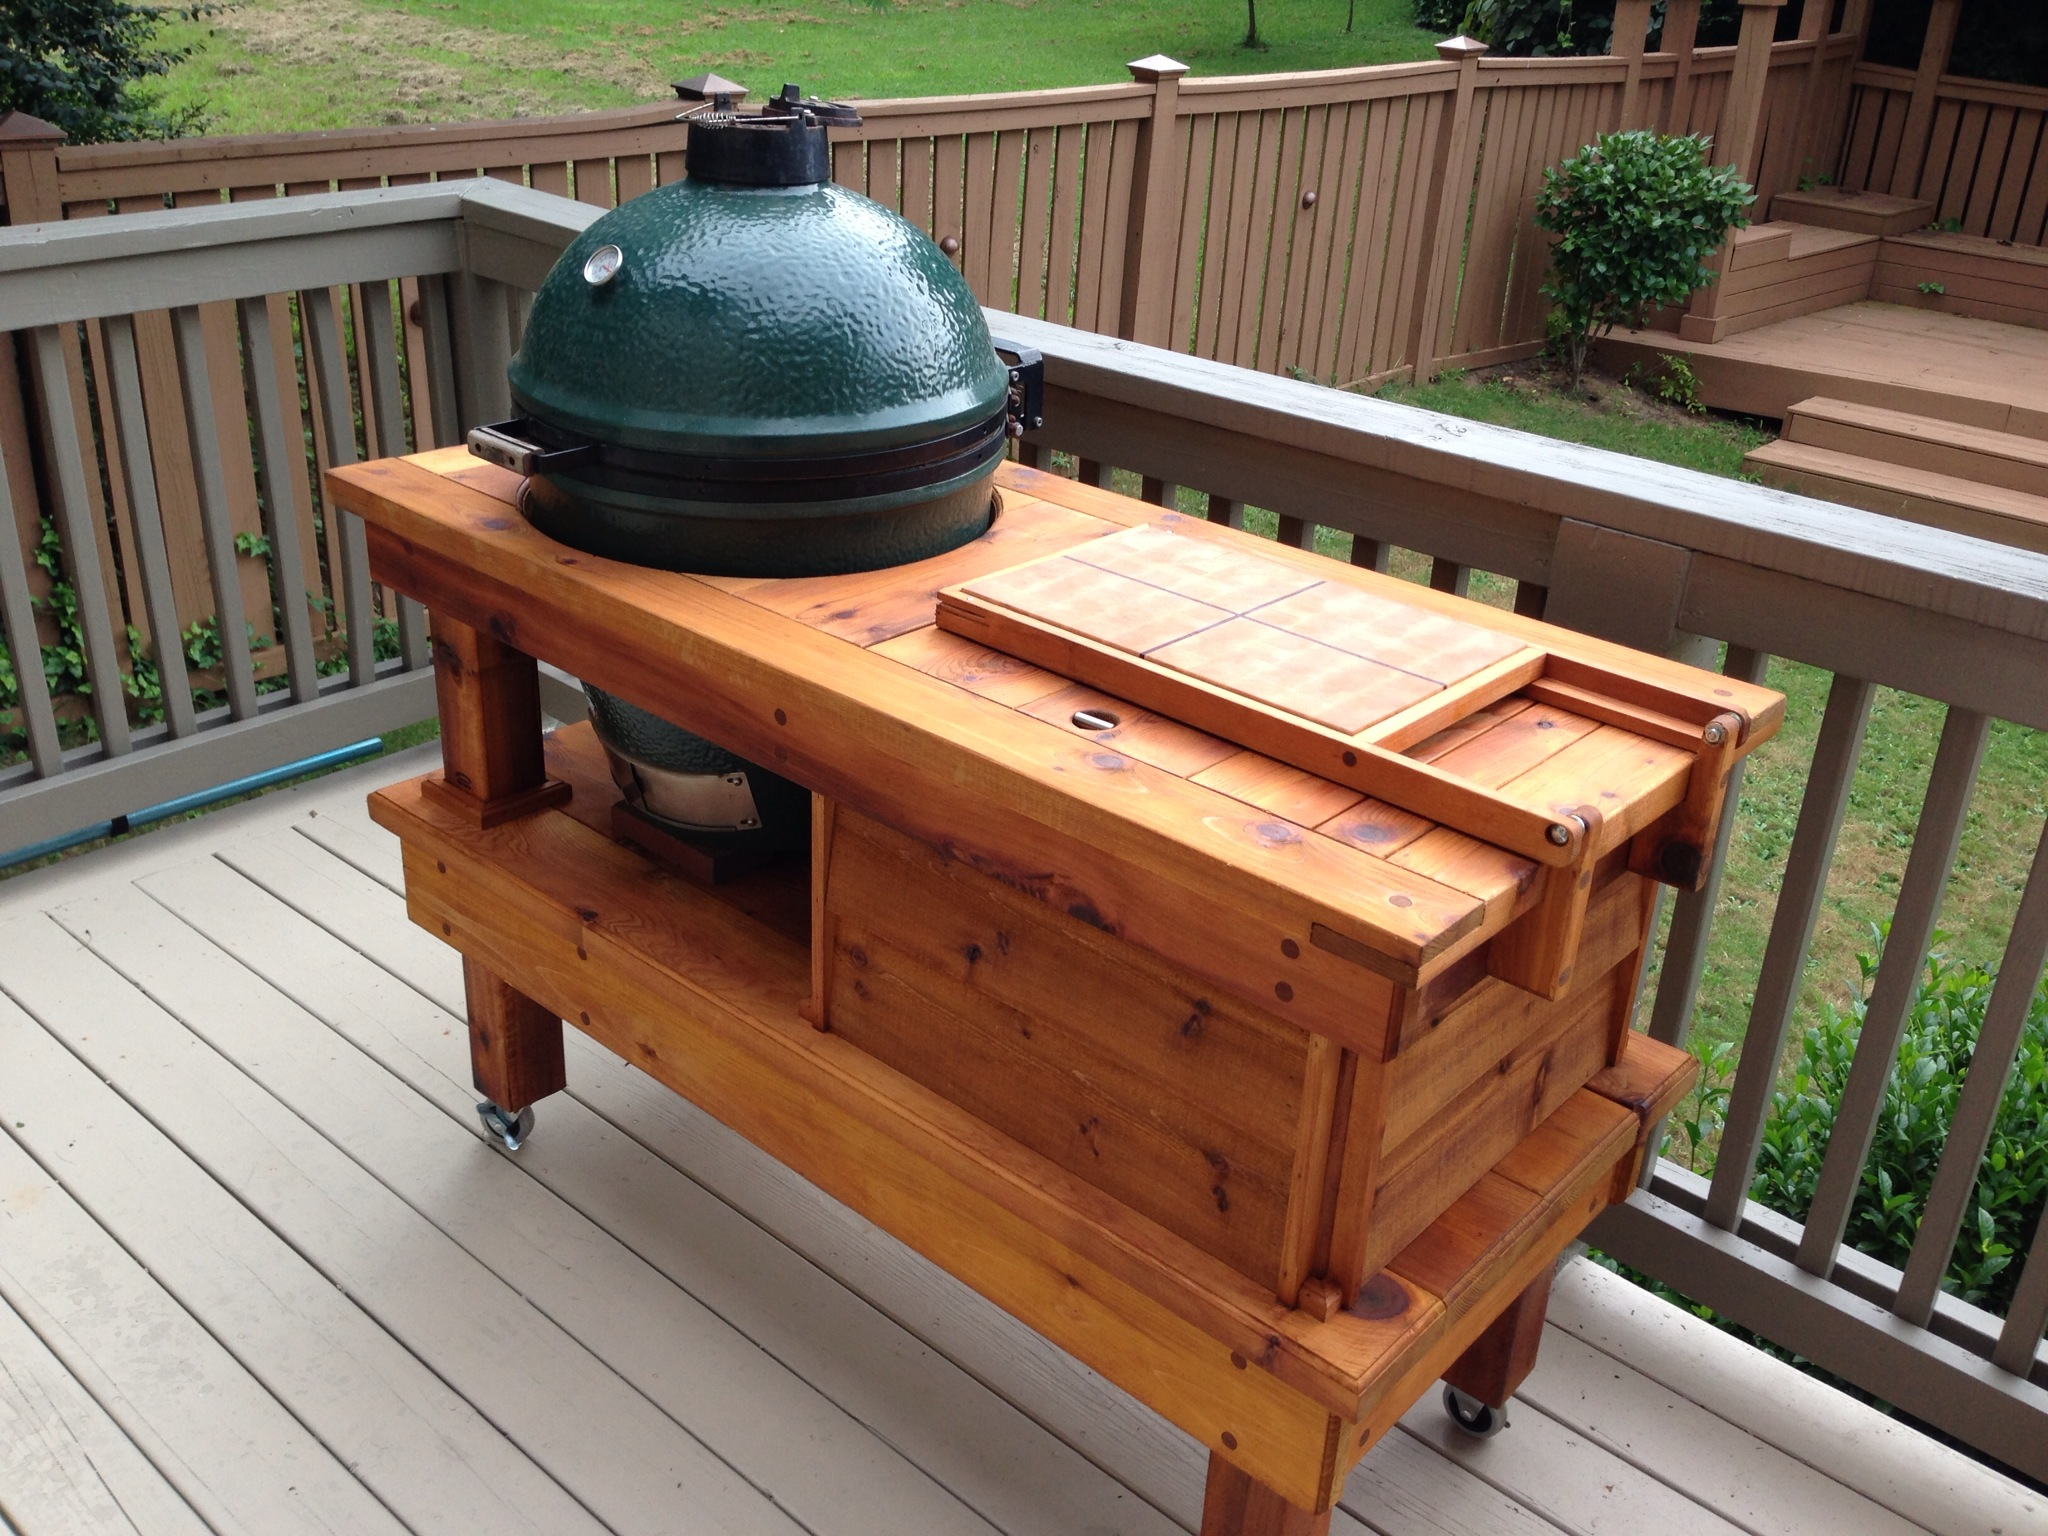 Build Big Green Egg Table Plans Granite DIY bunk bed plans small room ...